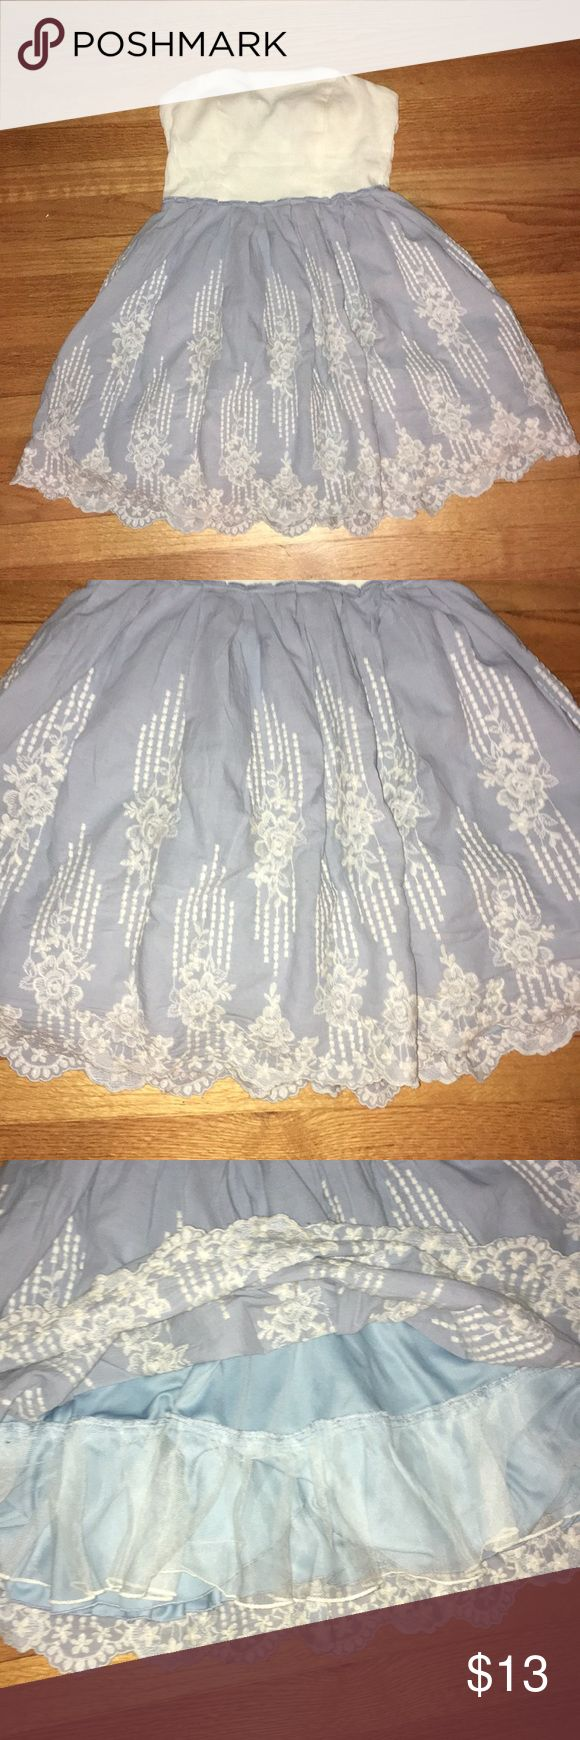 Blue and White Sweetheart Cut Tulle dress Beautiful blue and white mini tulle dress- sweetheart cut perfect for a casual night out. Gently worn. No belt included Dresses Mini